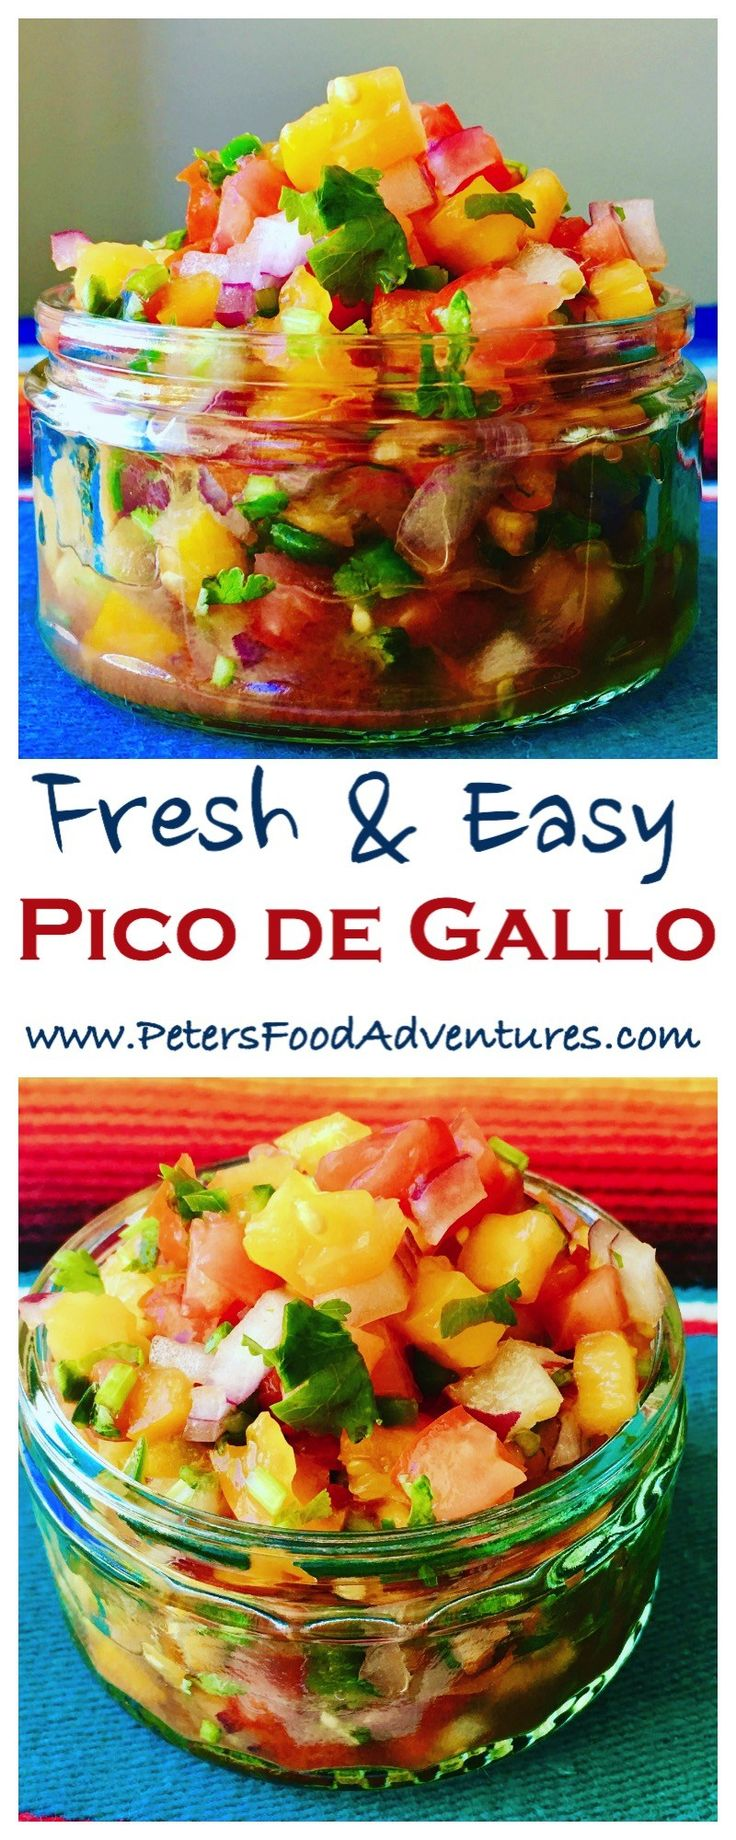 Easy made fresh salsa with chopped heirloom tomatoes, onions, jalapeños, cilantro and lime. Colorfully delicious! Perfect to dip nachos, tacos, fajitas or simply tortilla chips - Salsa Fresca - Pico de Gallo